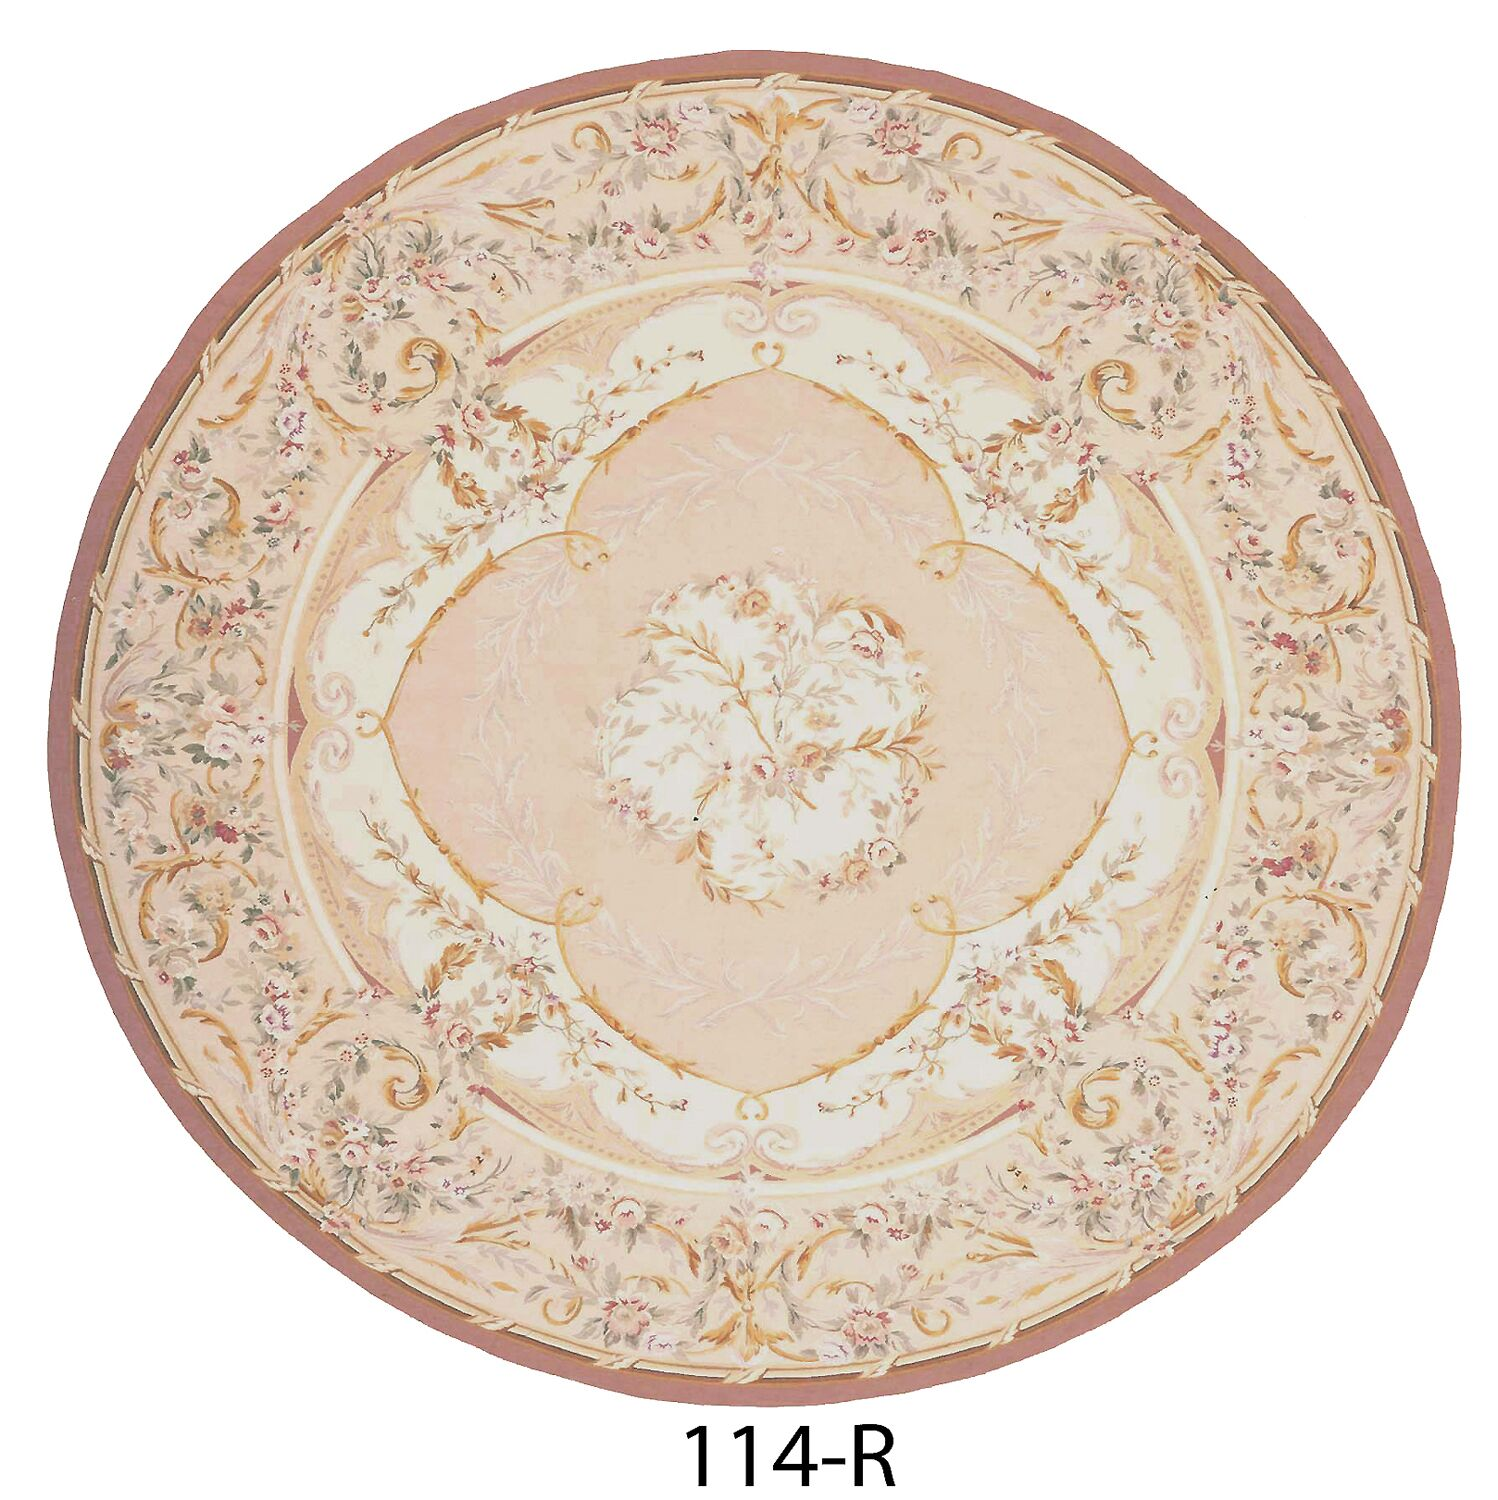 Aubusson Hand-Woven Wool Beige/Brown Area Rug Rug Size: Round 9'1